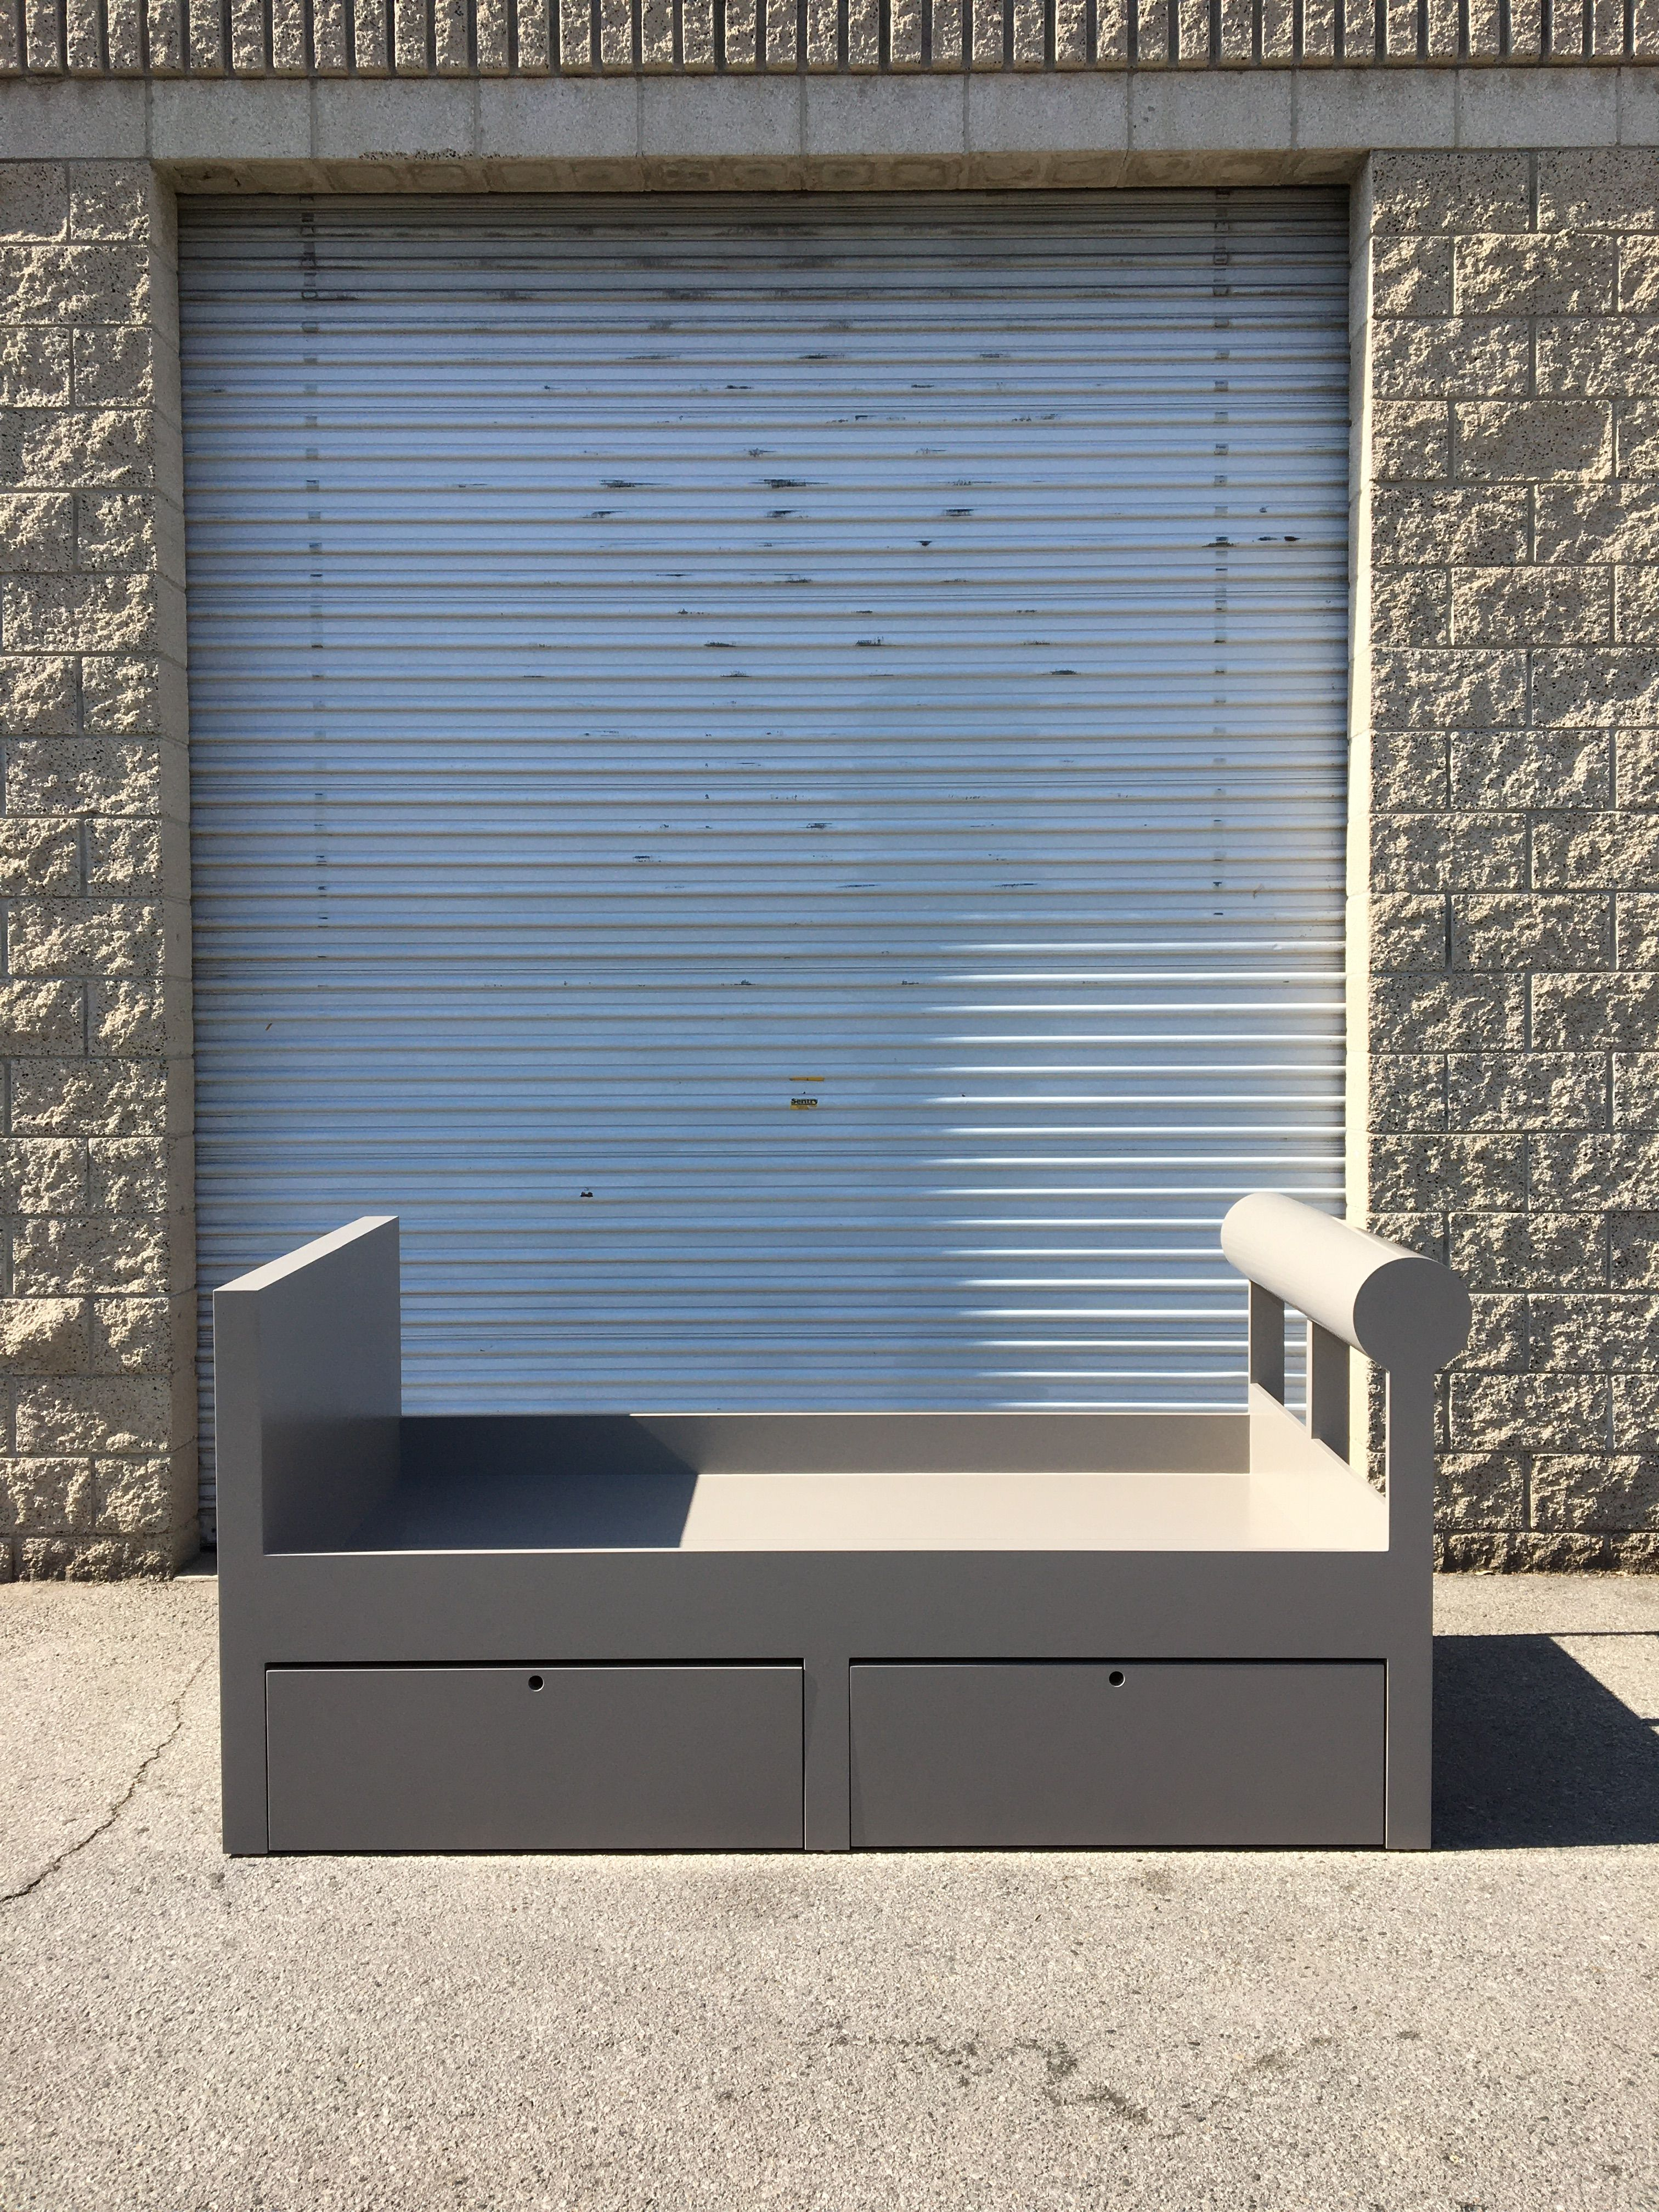 Cylinder Bed - Drawers product image 0